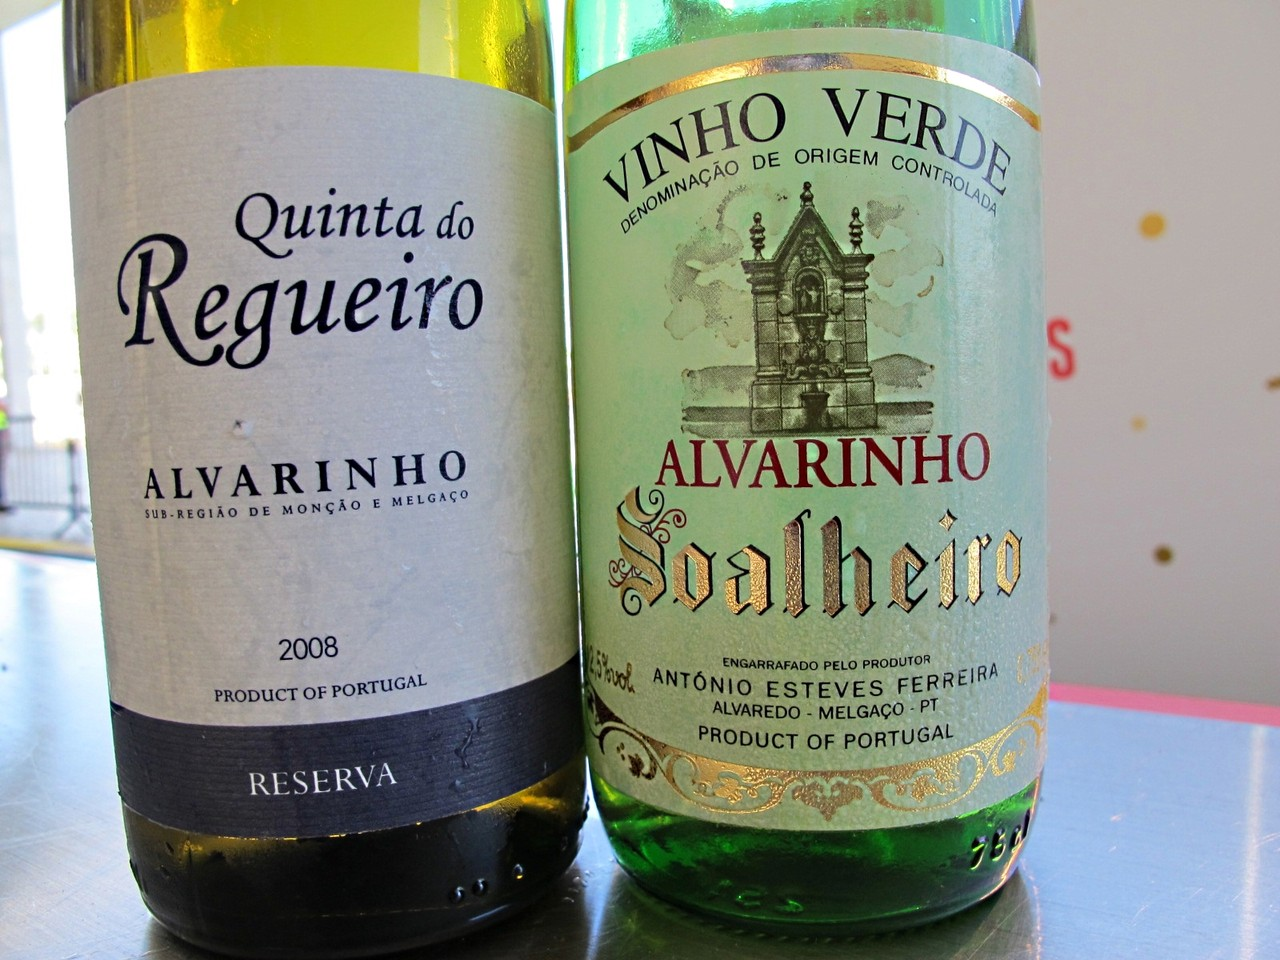 Quinta do Regueiro e Soalheiro